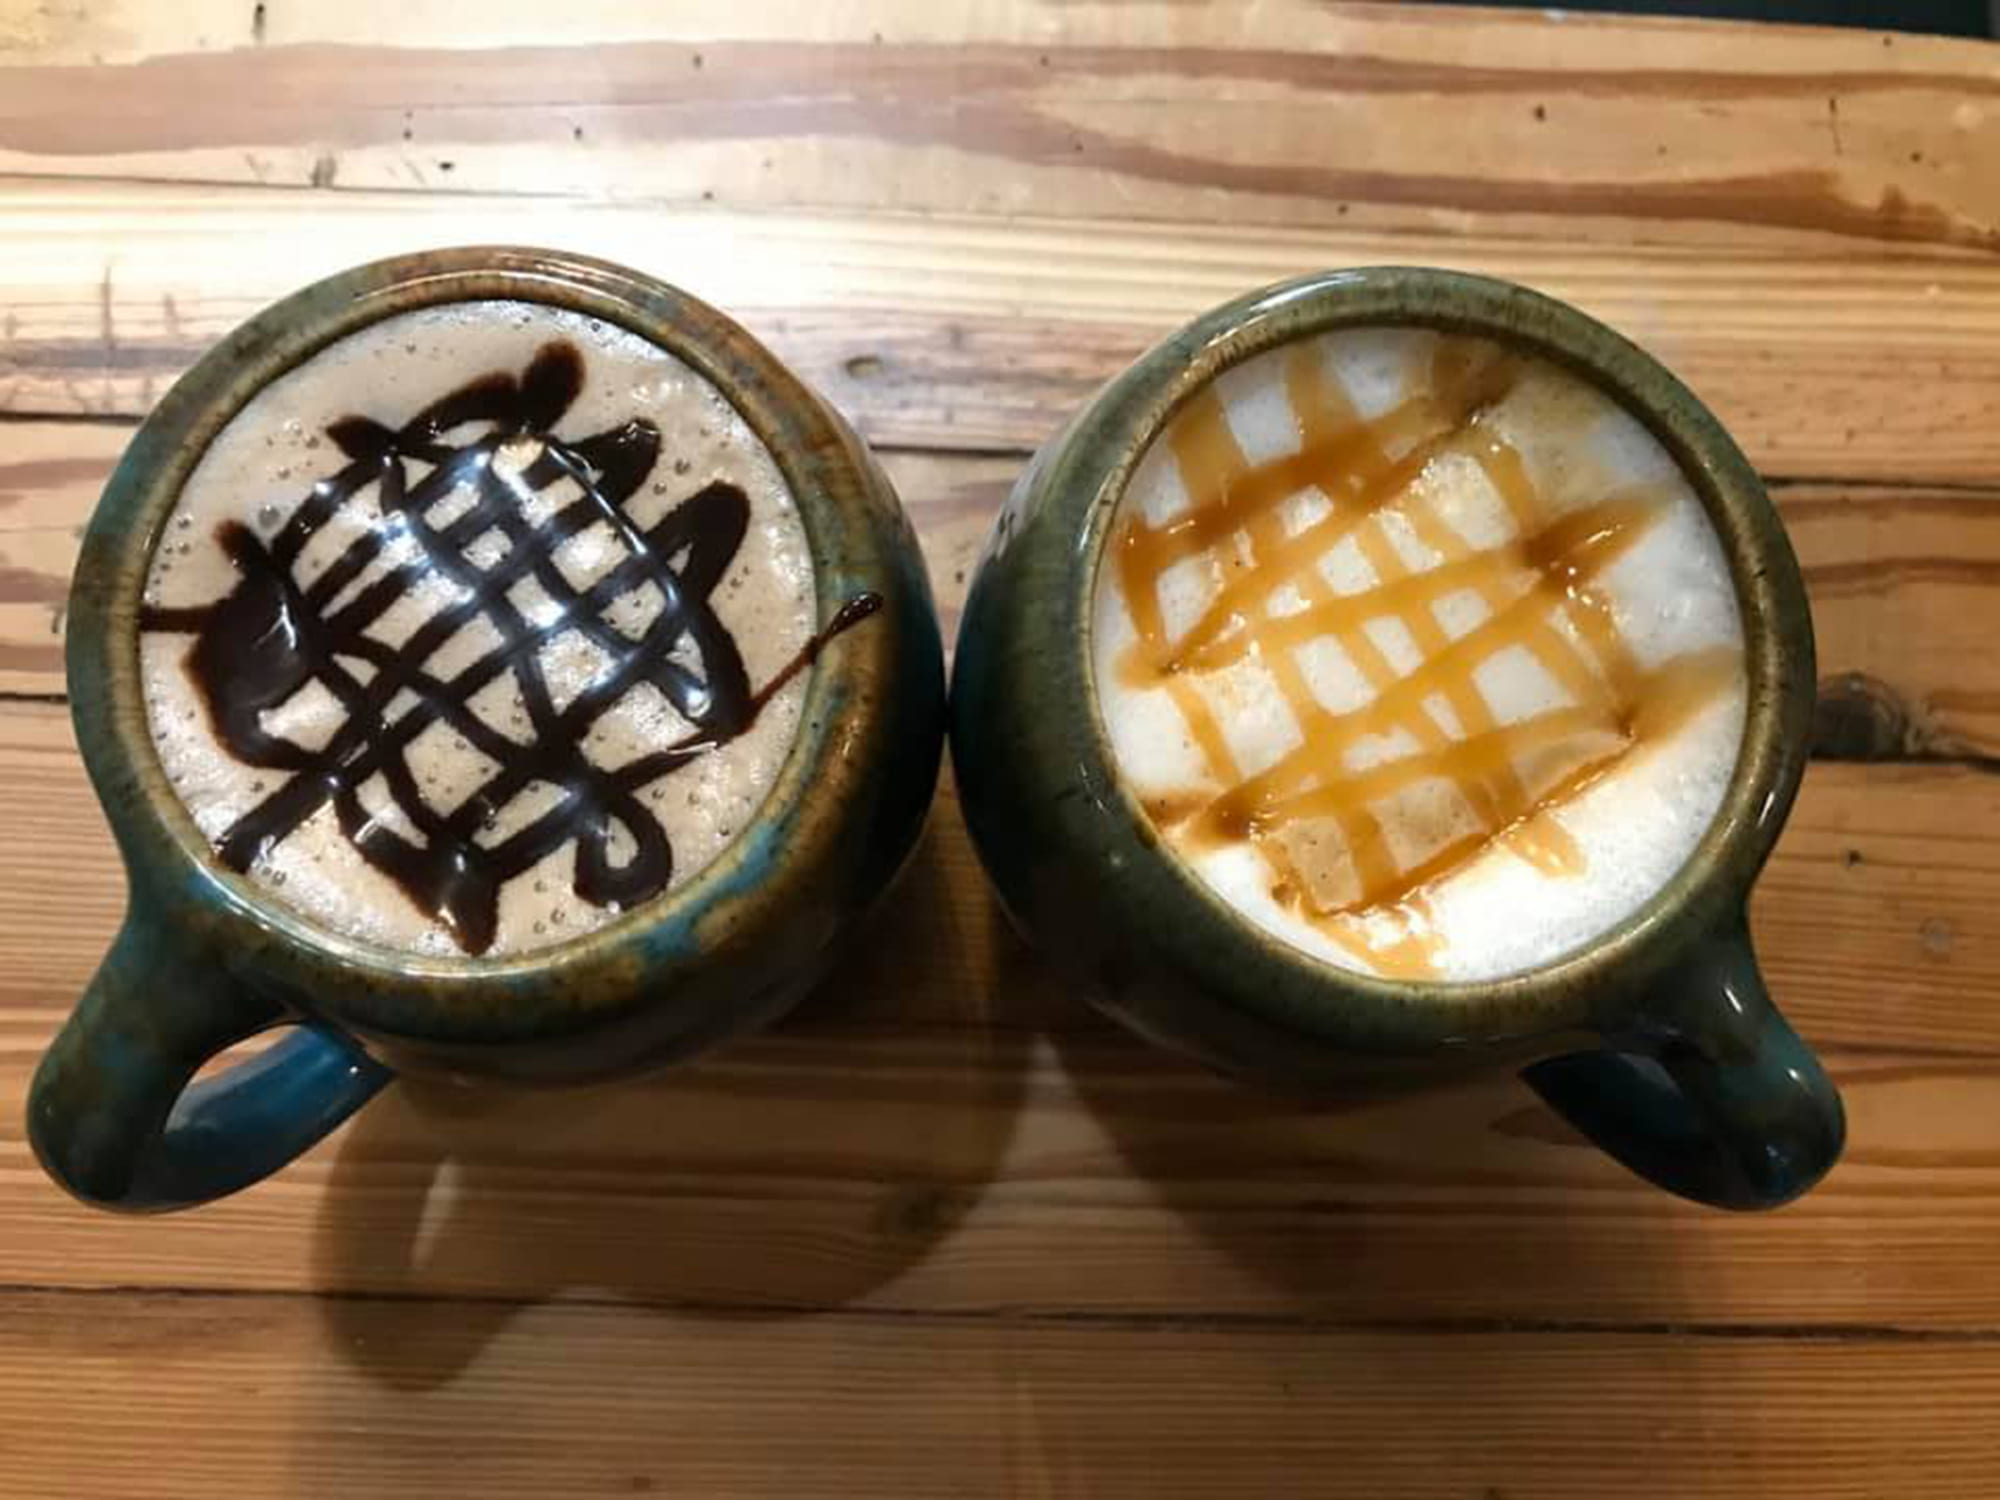 Two cups of coffee on wooden table. One with chocolate drizzle and one with caramel drizzle.